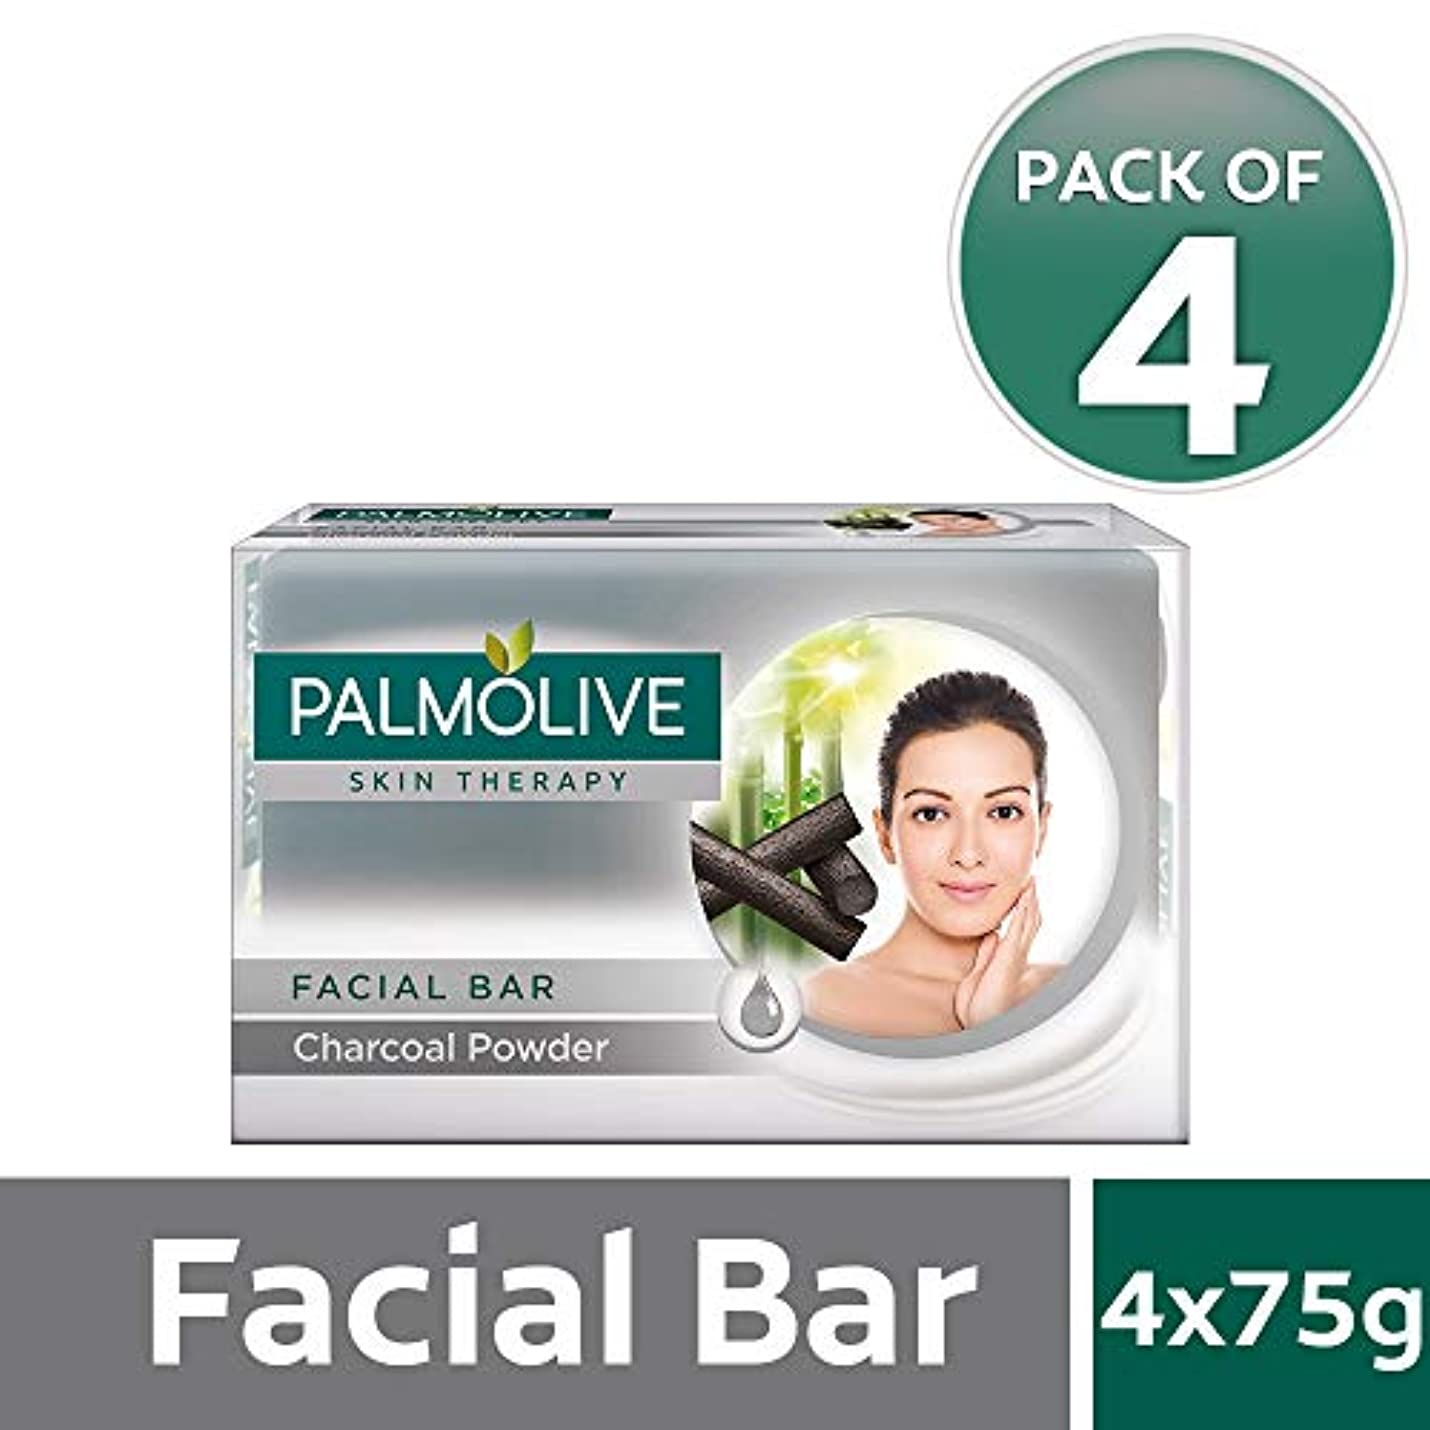 Palmolive Skin Therapy Facial Bar Soap with Charcoal Powder - 75g (Pack of 4)